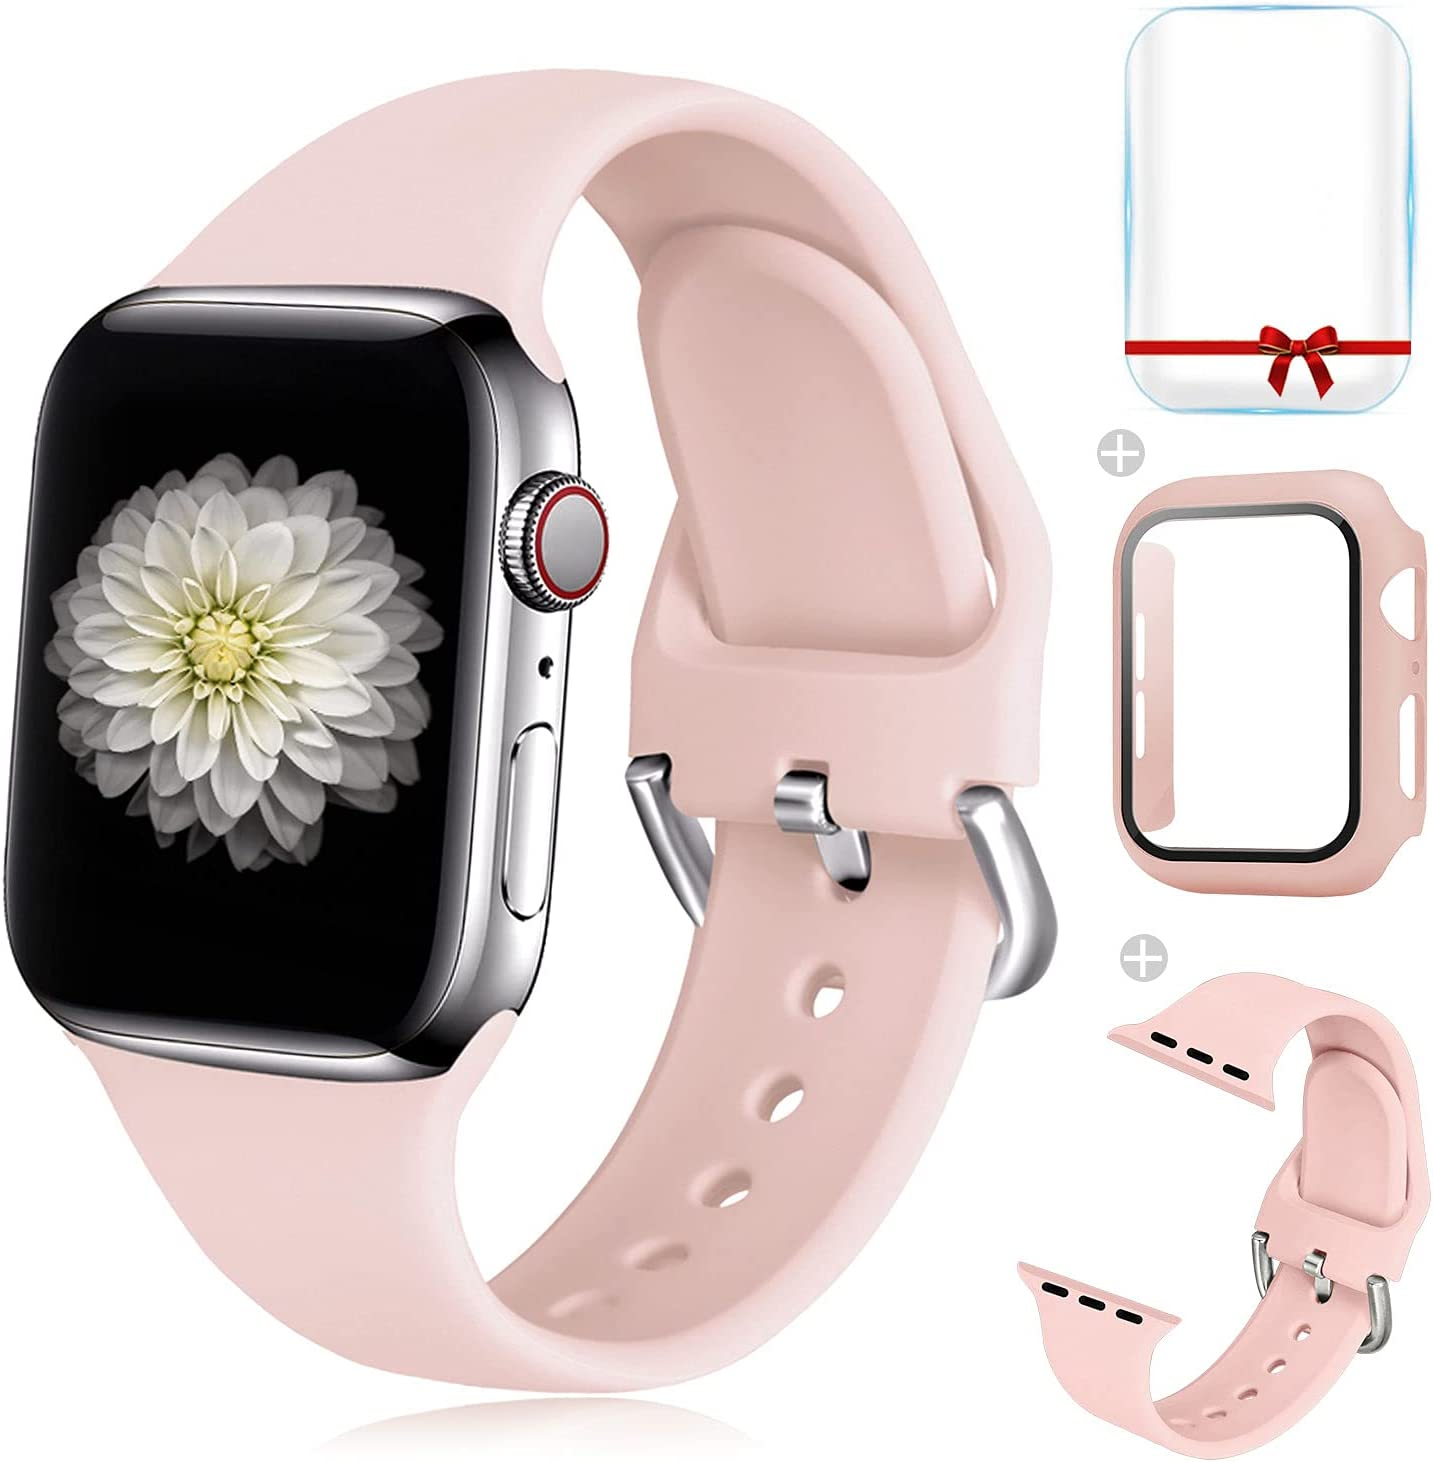 Foranyo 3 in 1 Compatible with Apple Watch Band 44mm 42mm 40mm 38mm, Soft Silicone Sport Replacement Strap Watch Band for Women & Men, Case with Glass Screen Protector Compatible with iWatch for Series SE 6 5 4 3 2 1 (Pink, 44mm)